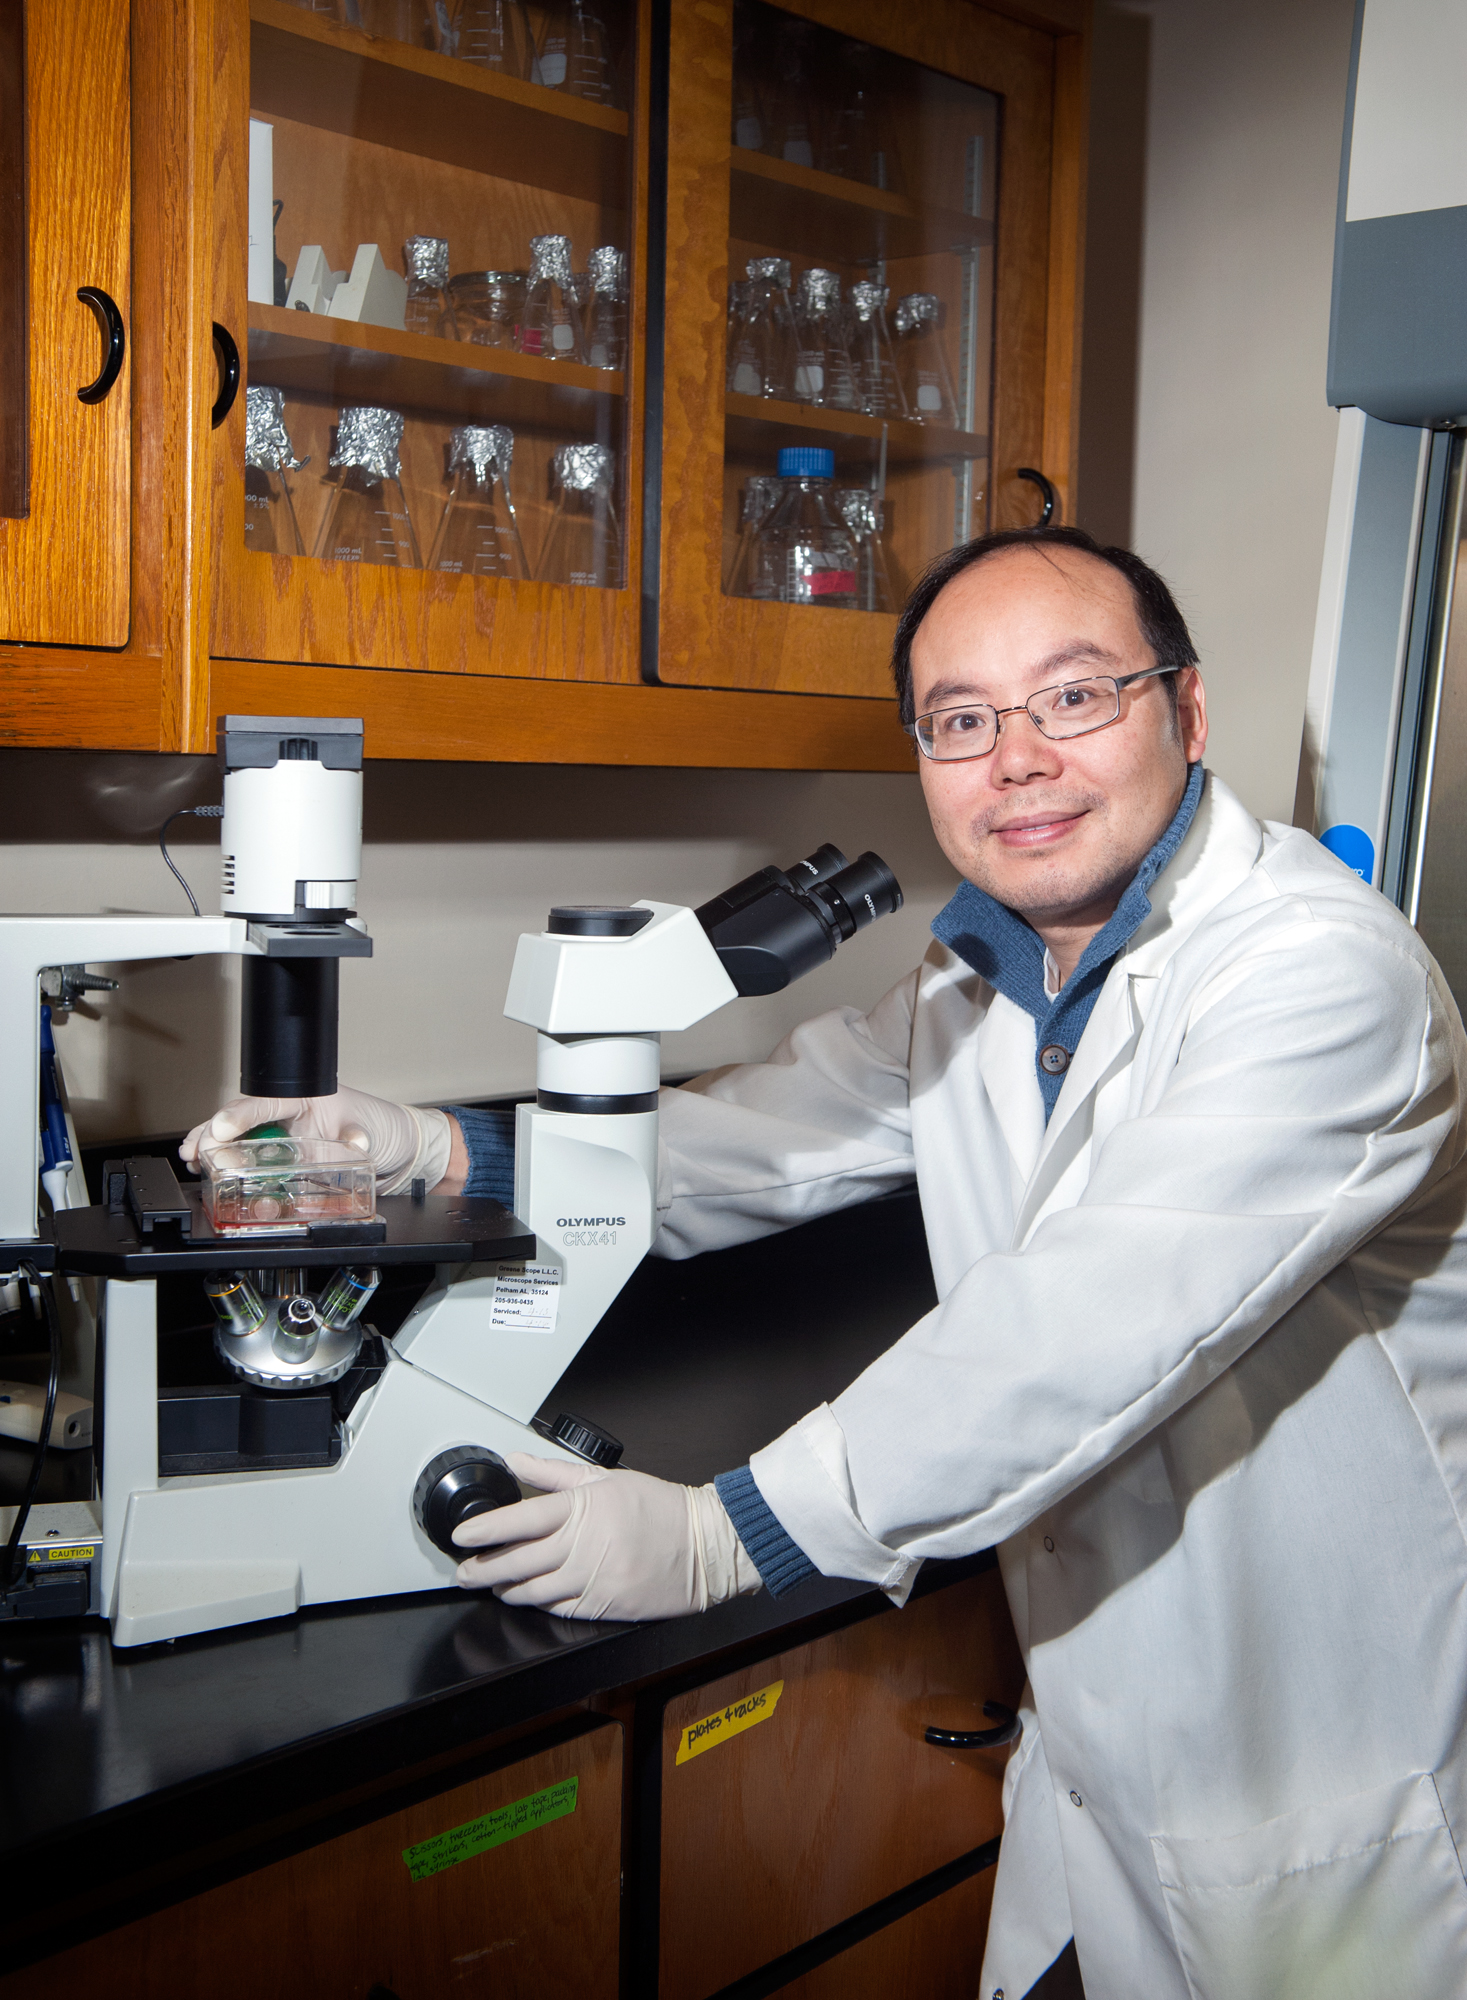 Dr. Henry Wan, an associate professor at Mississippi State University's College of Veterinary Medicine, has been awarded a National Institutes of Health RO1 grant to develop better ways of determining new flu vaccines.